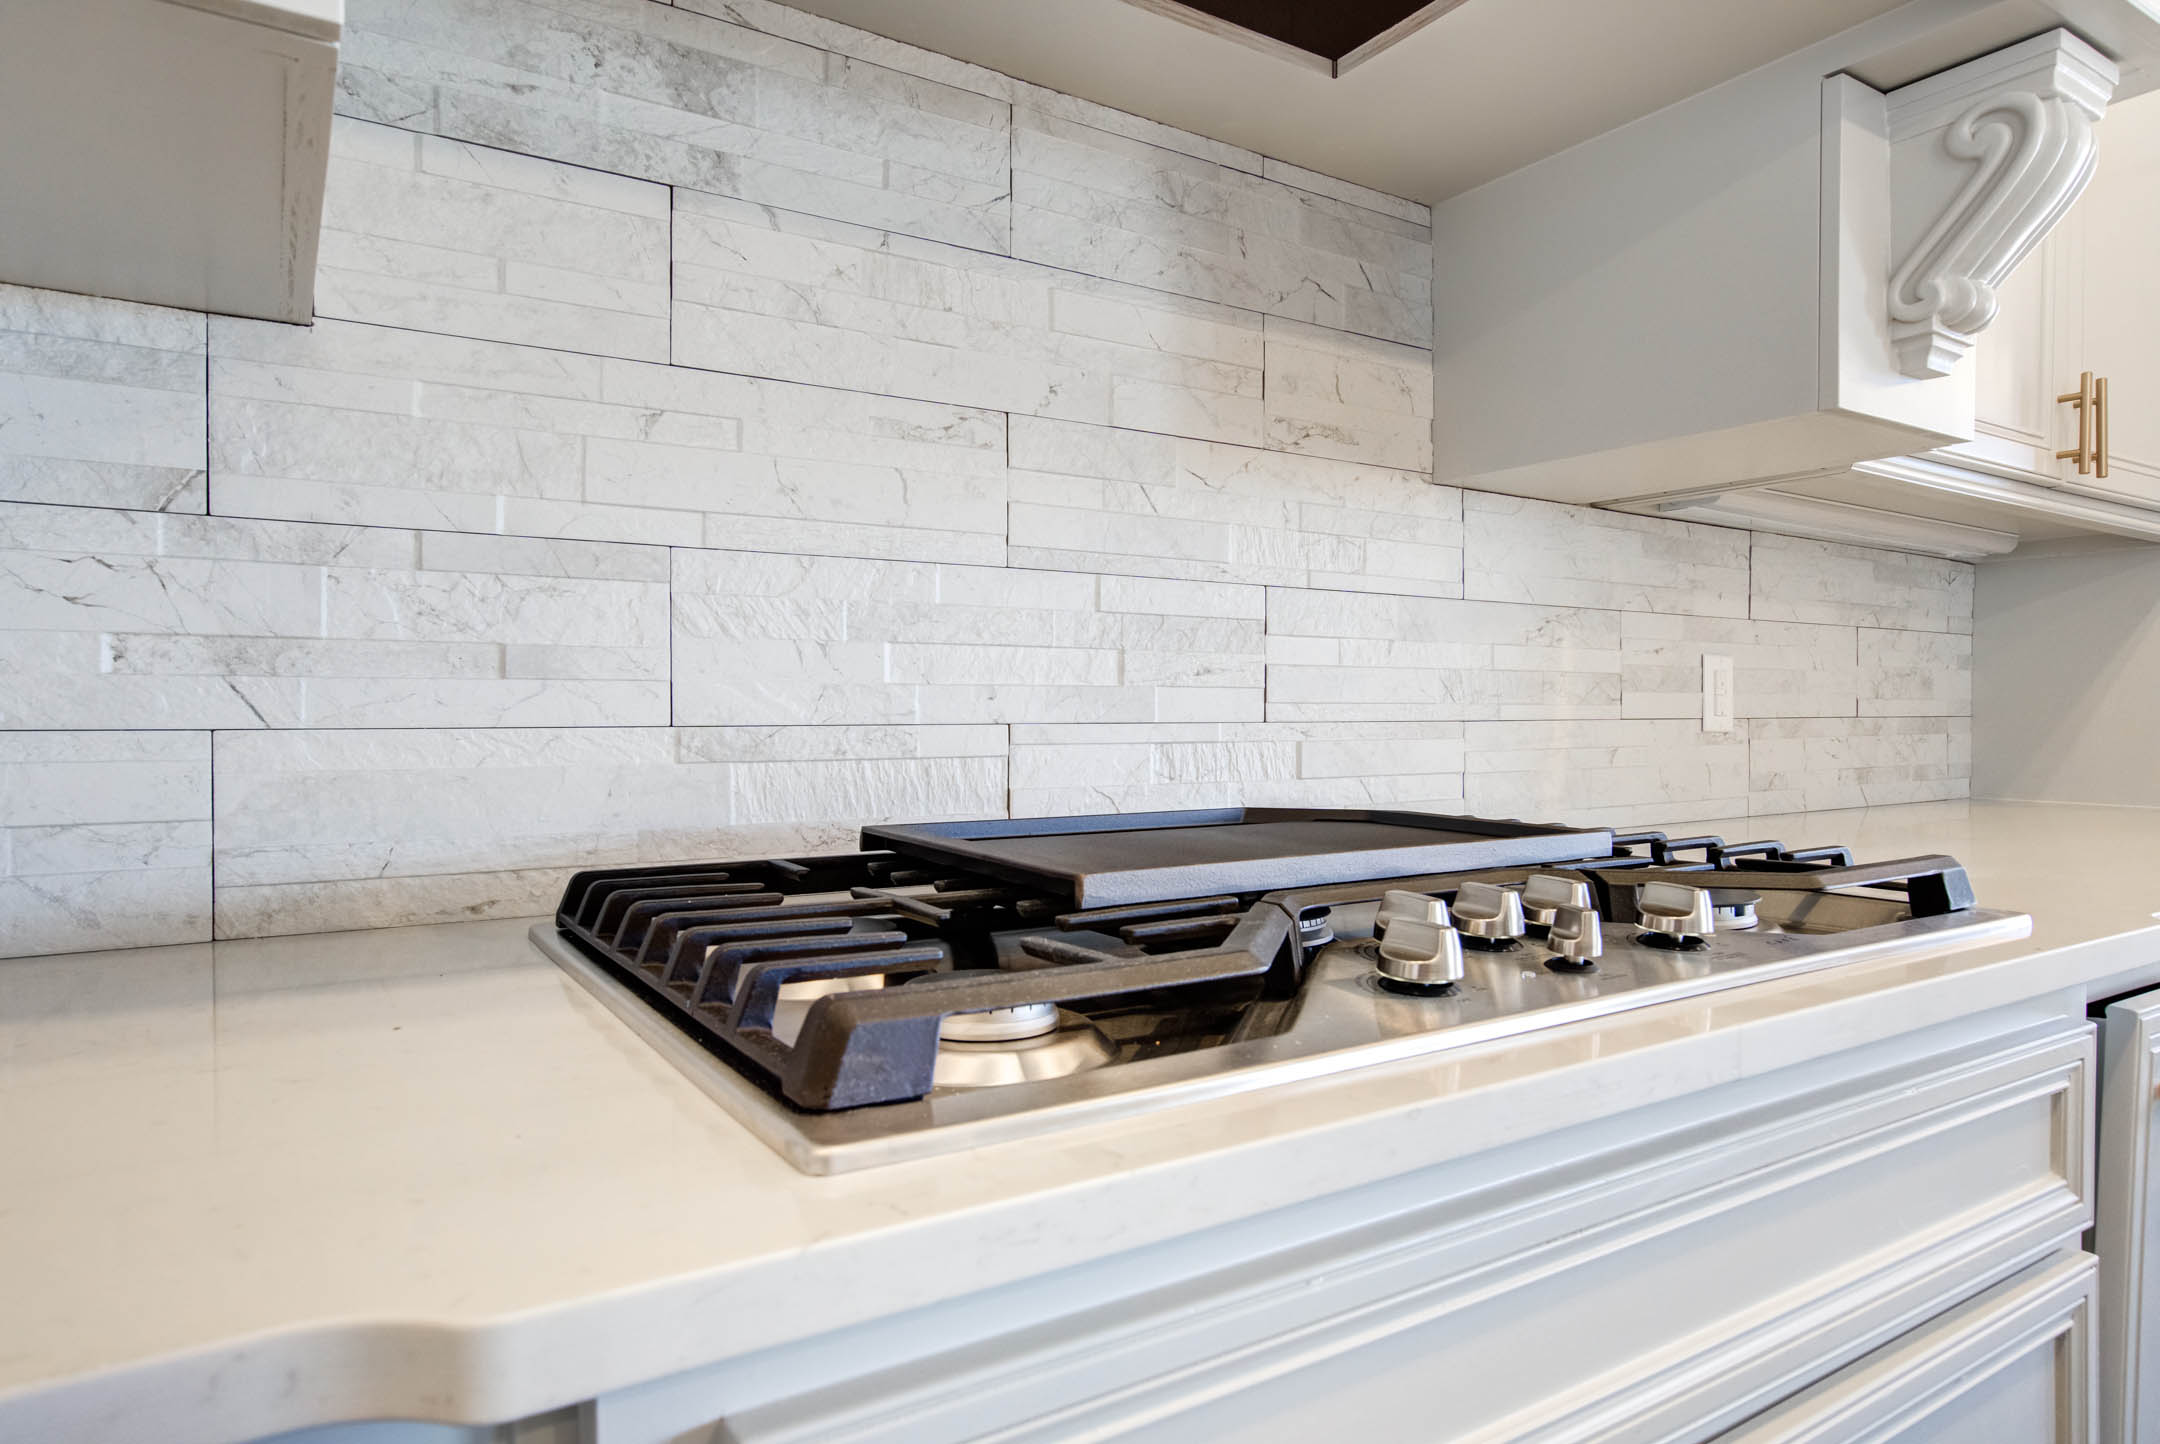 Kitchen stove area in new house for sale near Lubbock.